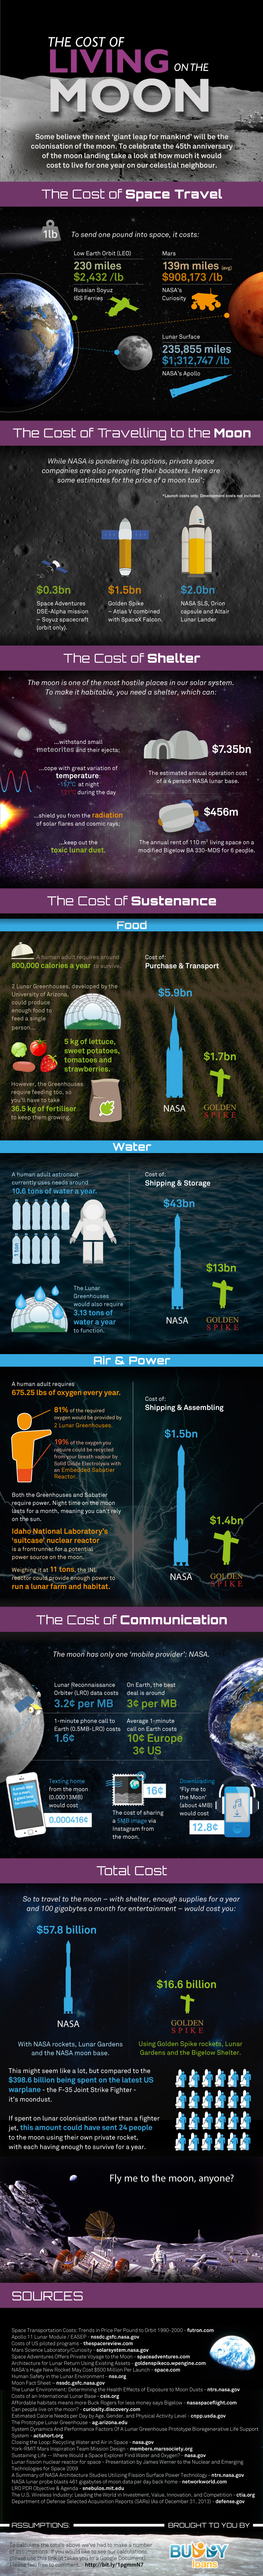 The Cost Of Living on the Moon